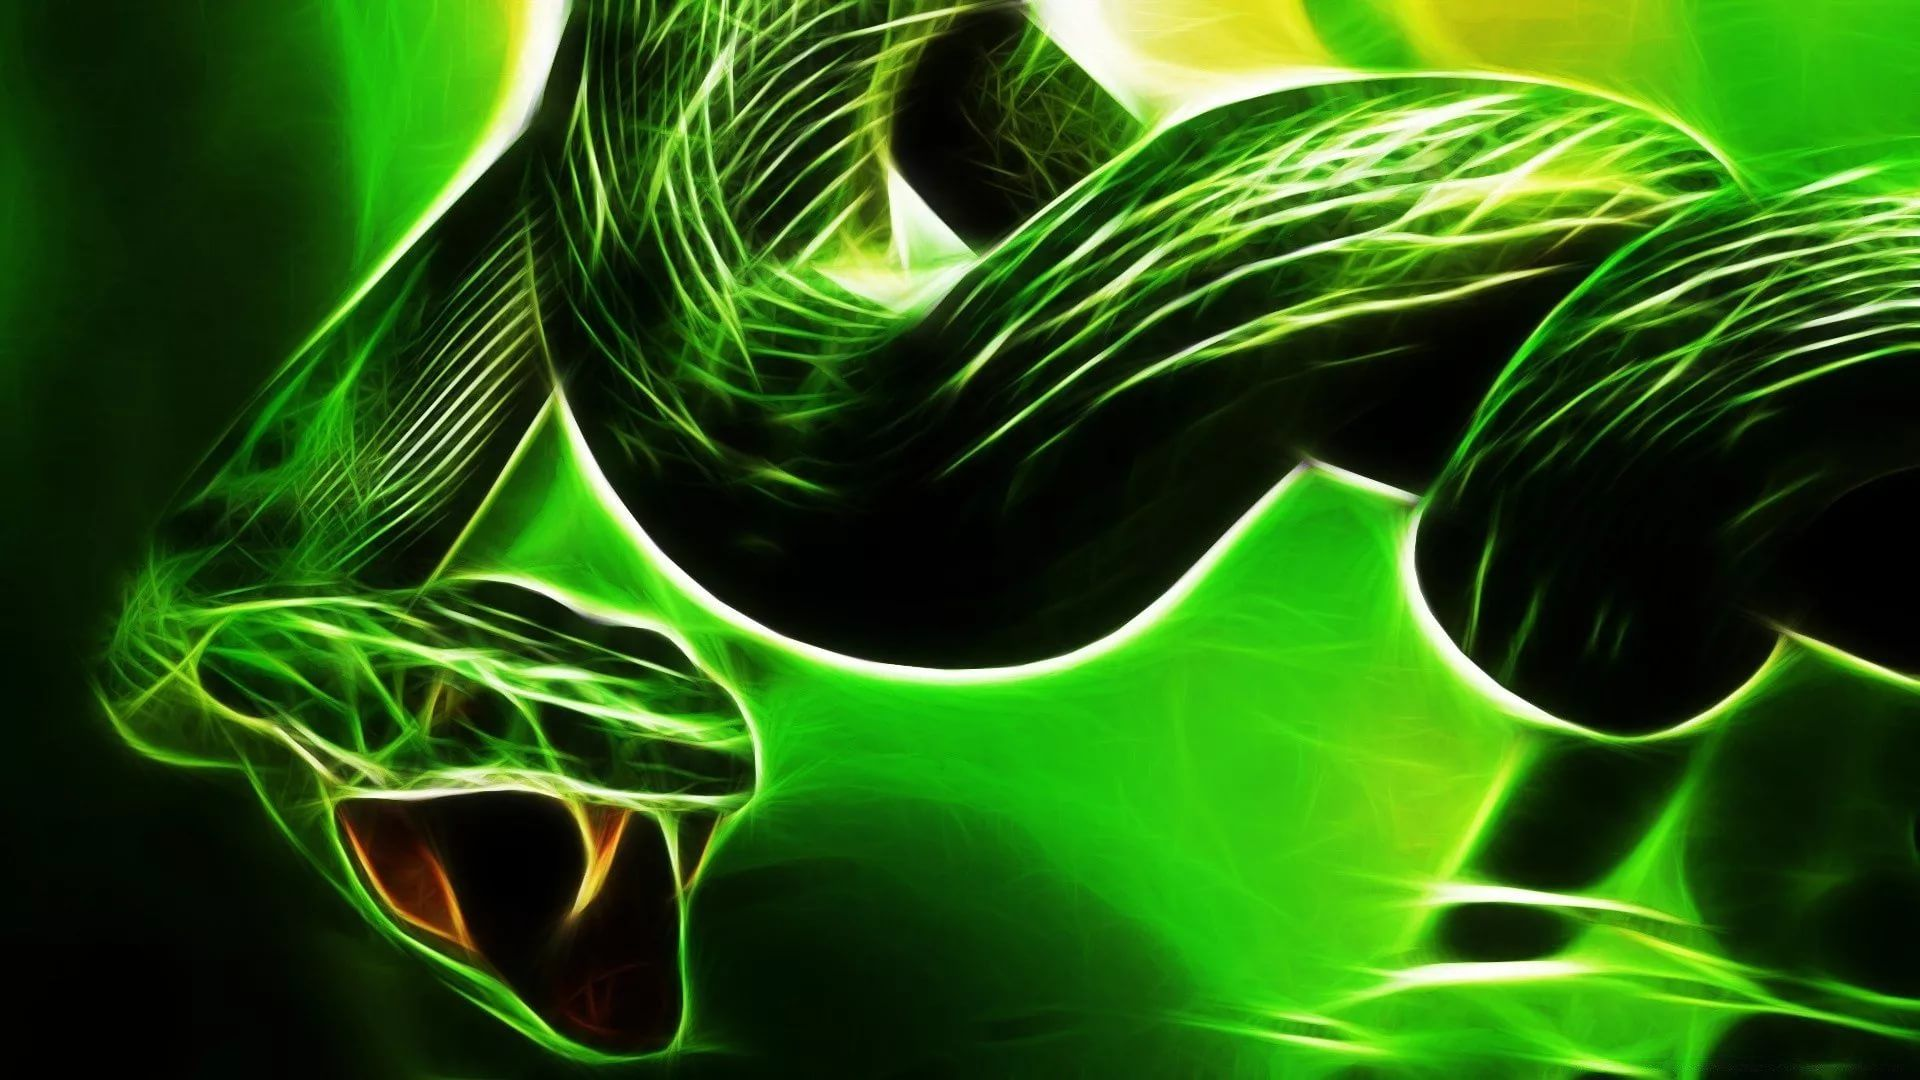 Neon Green Picture